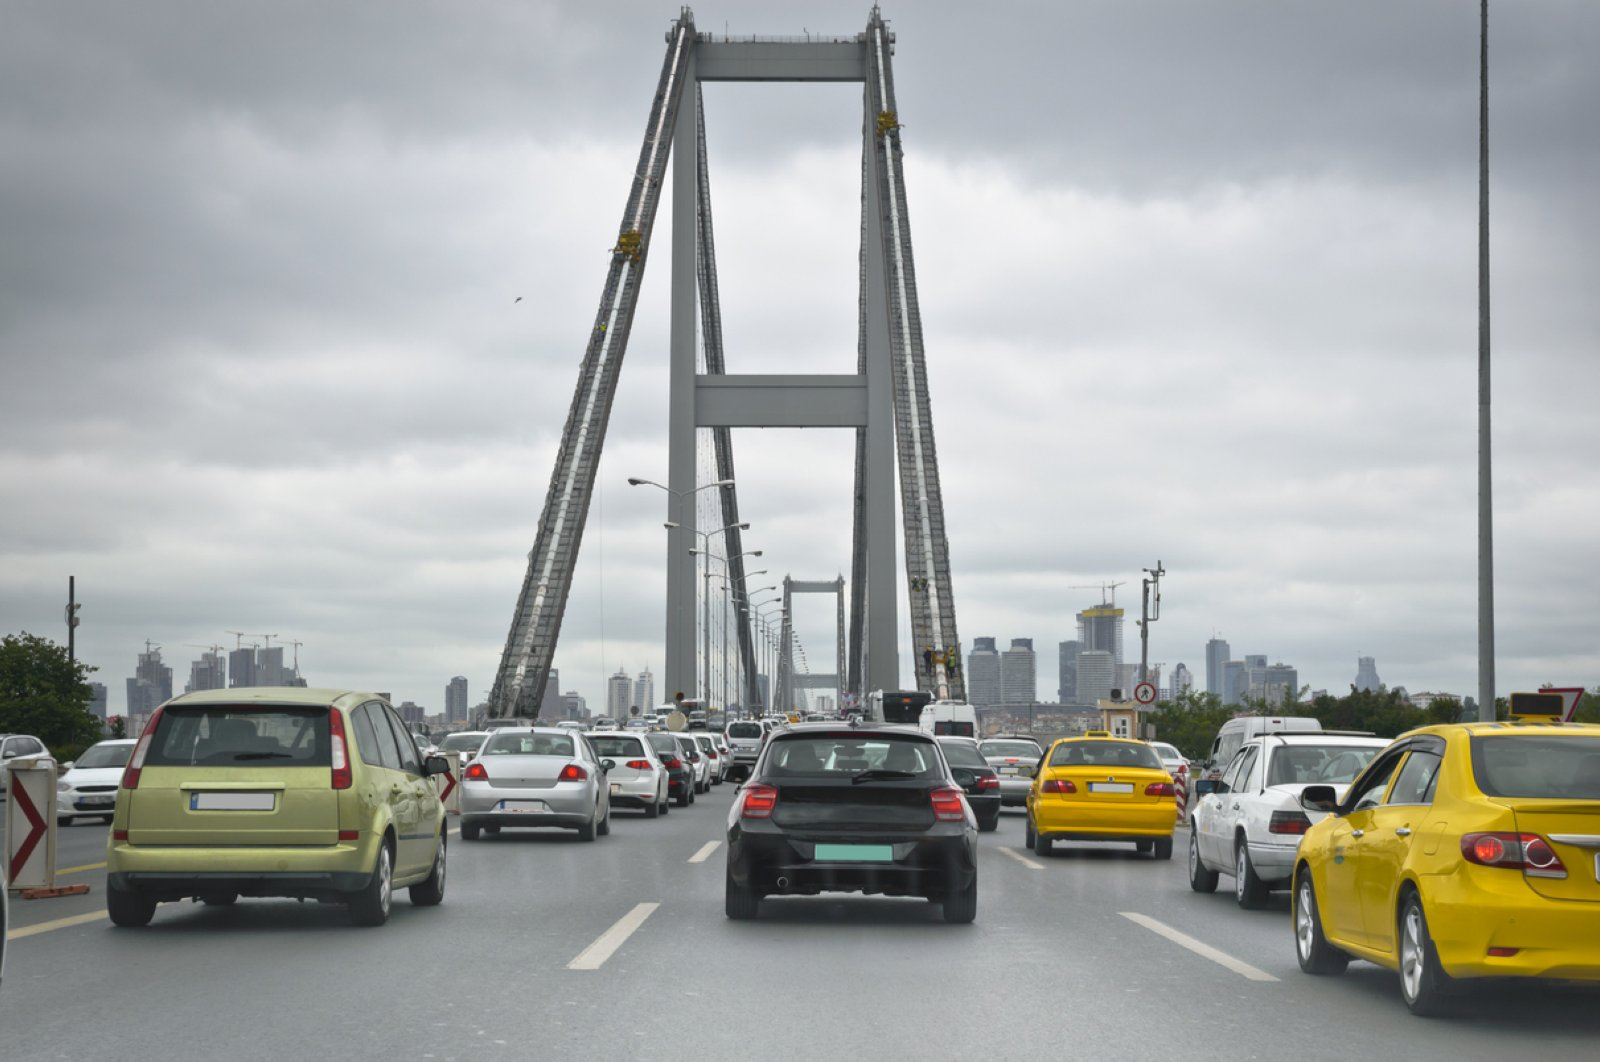 Vehicles are seen at the July 15 Martyrs Bridge, formerly known as the Bosporus Bridge, during rush hours, Istanbul, Turkey. (iStock Photo by Adem Percem)